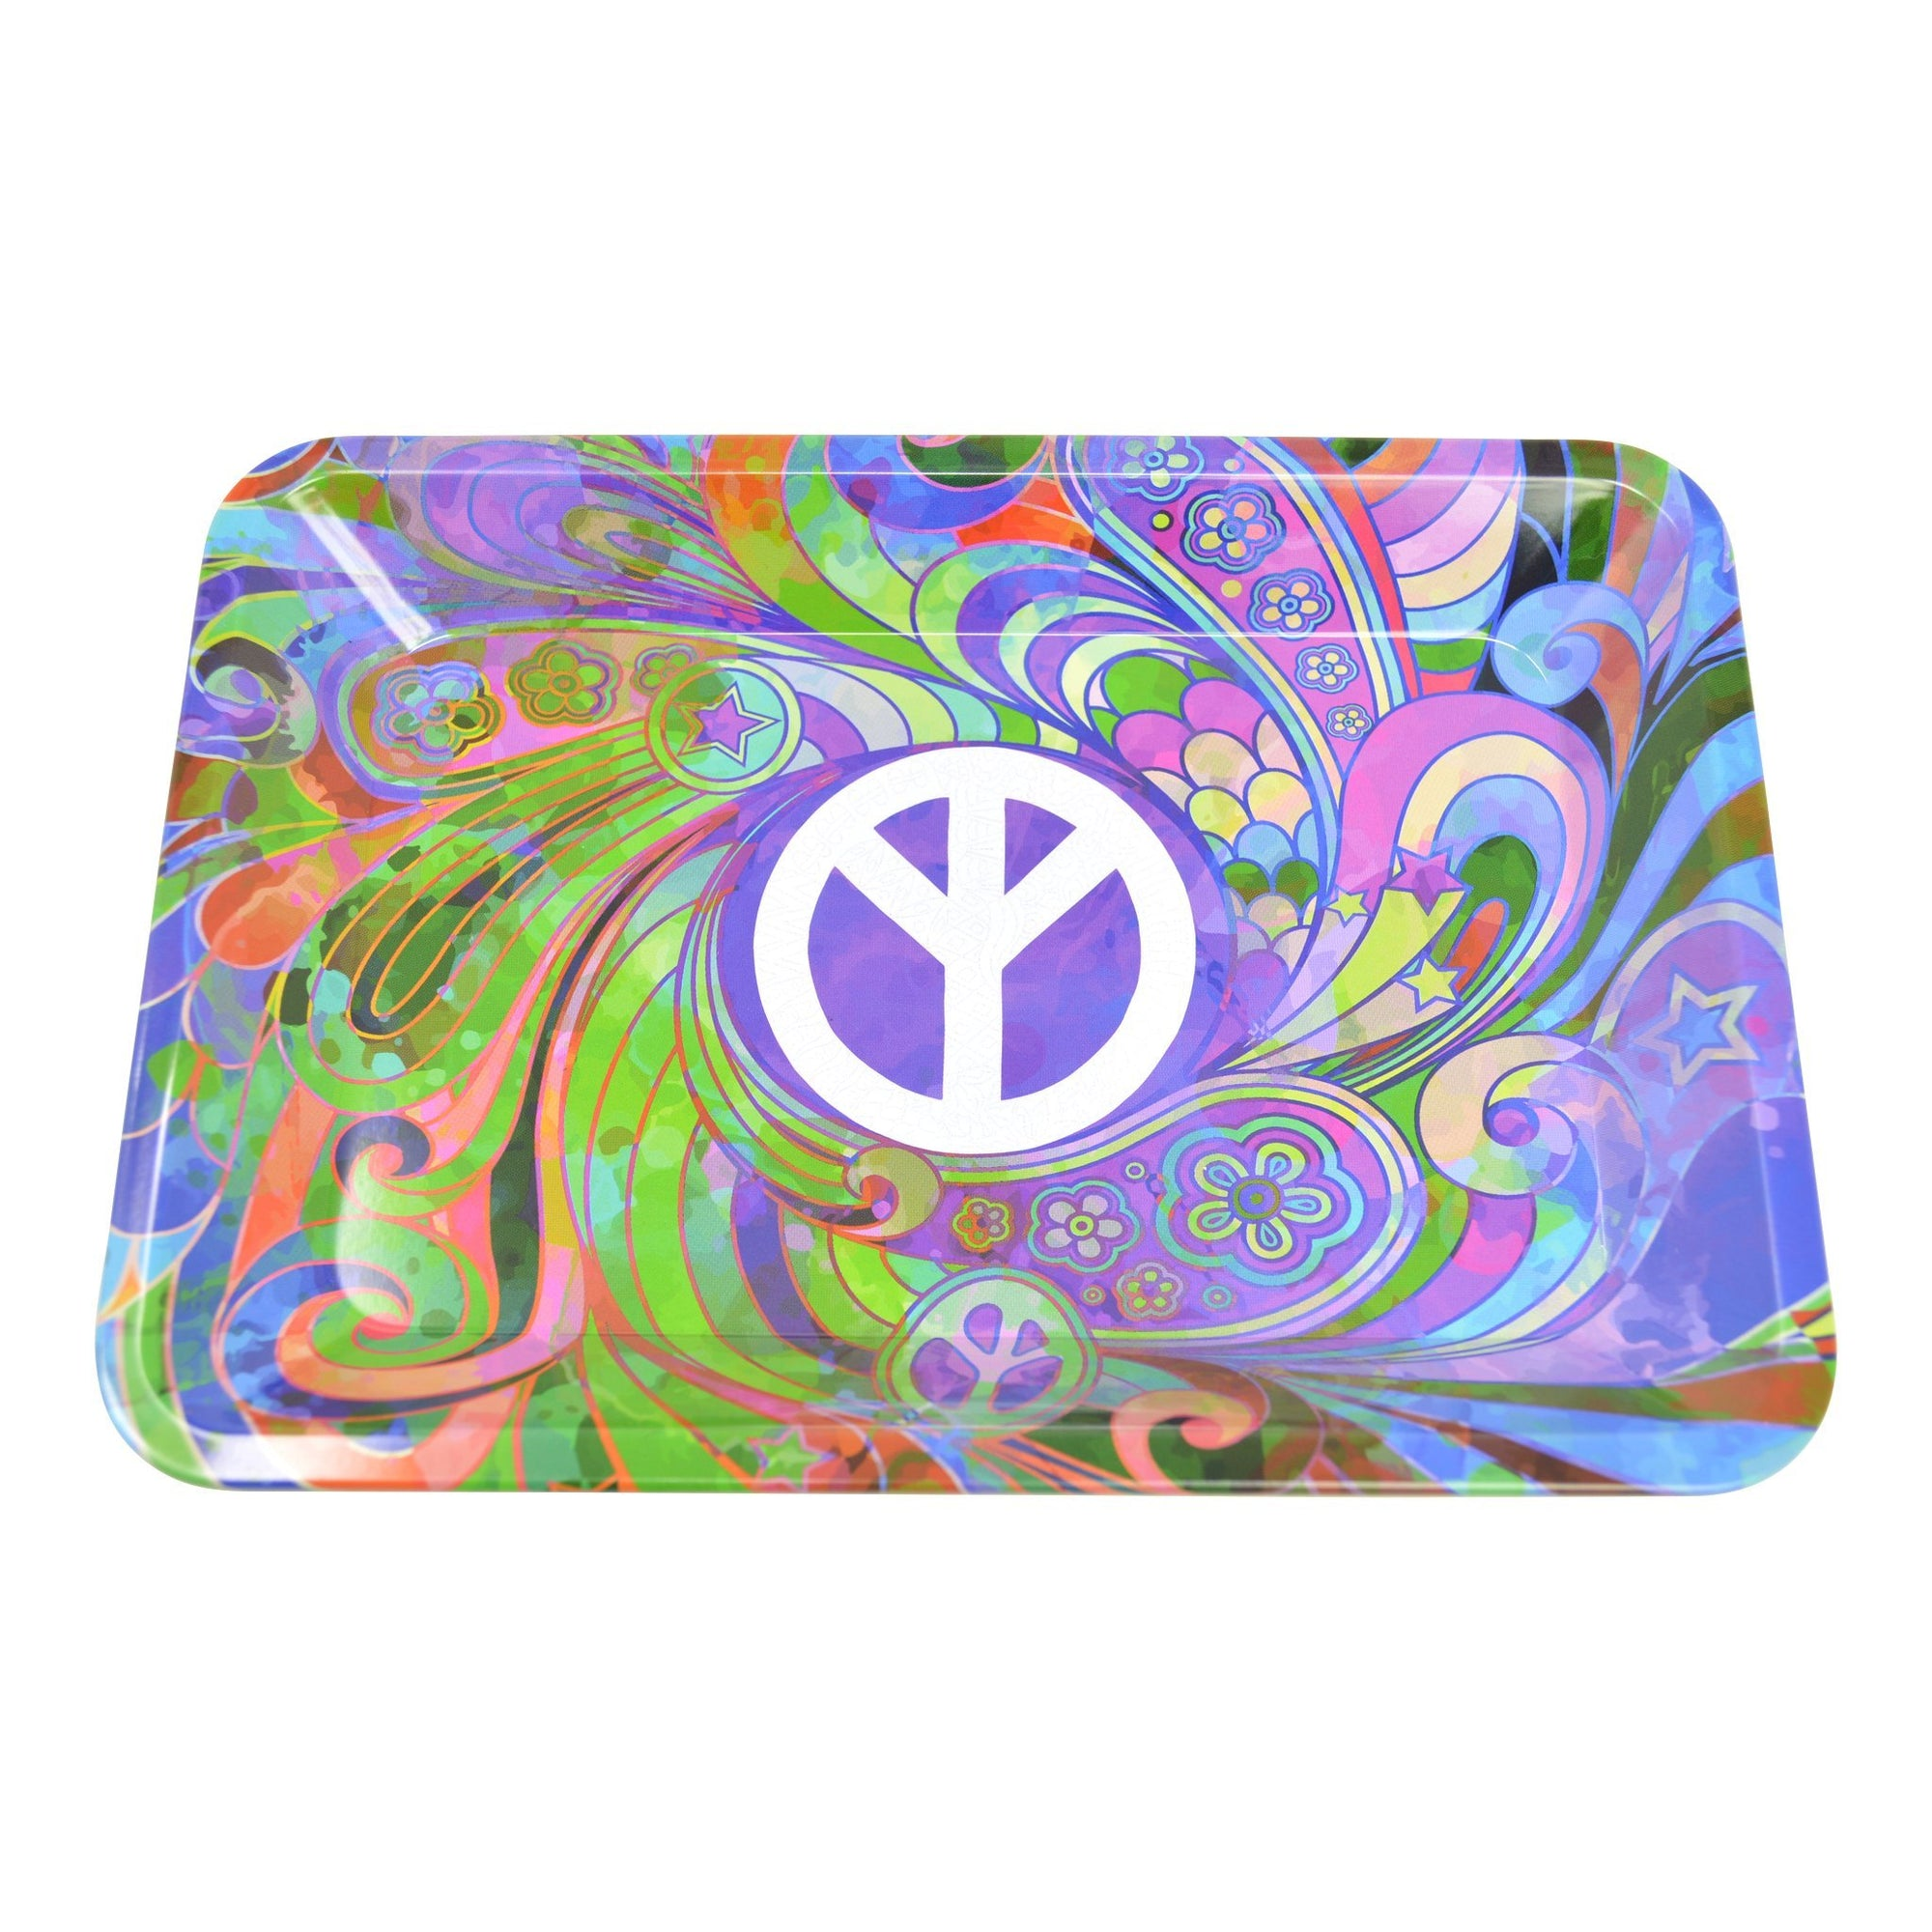 Full shot 5 inch metal rolling tray white peace sign at center multicolored background floral swirl splashes design